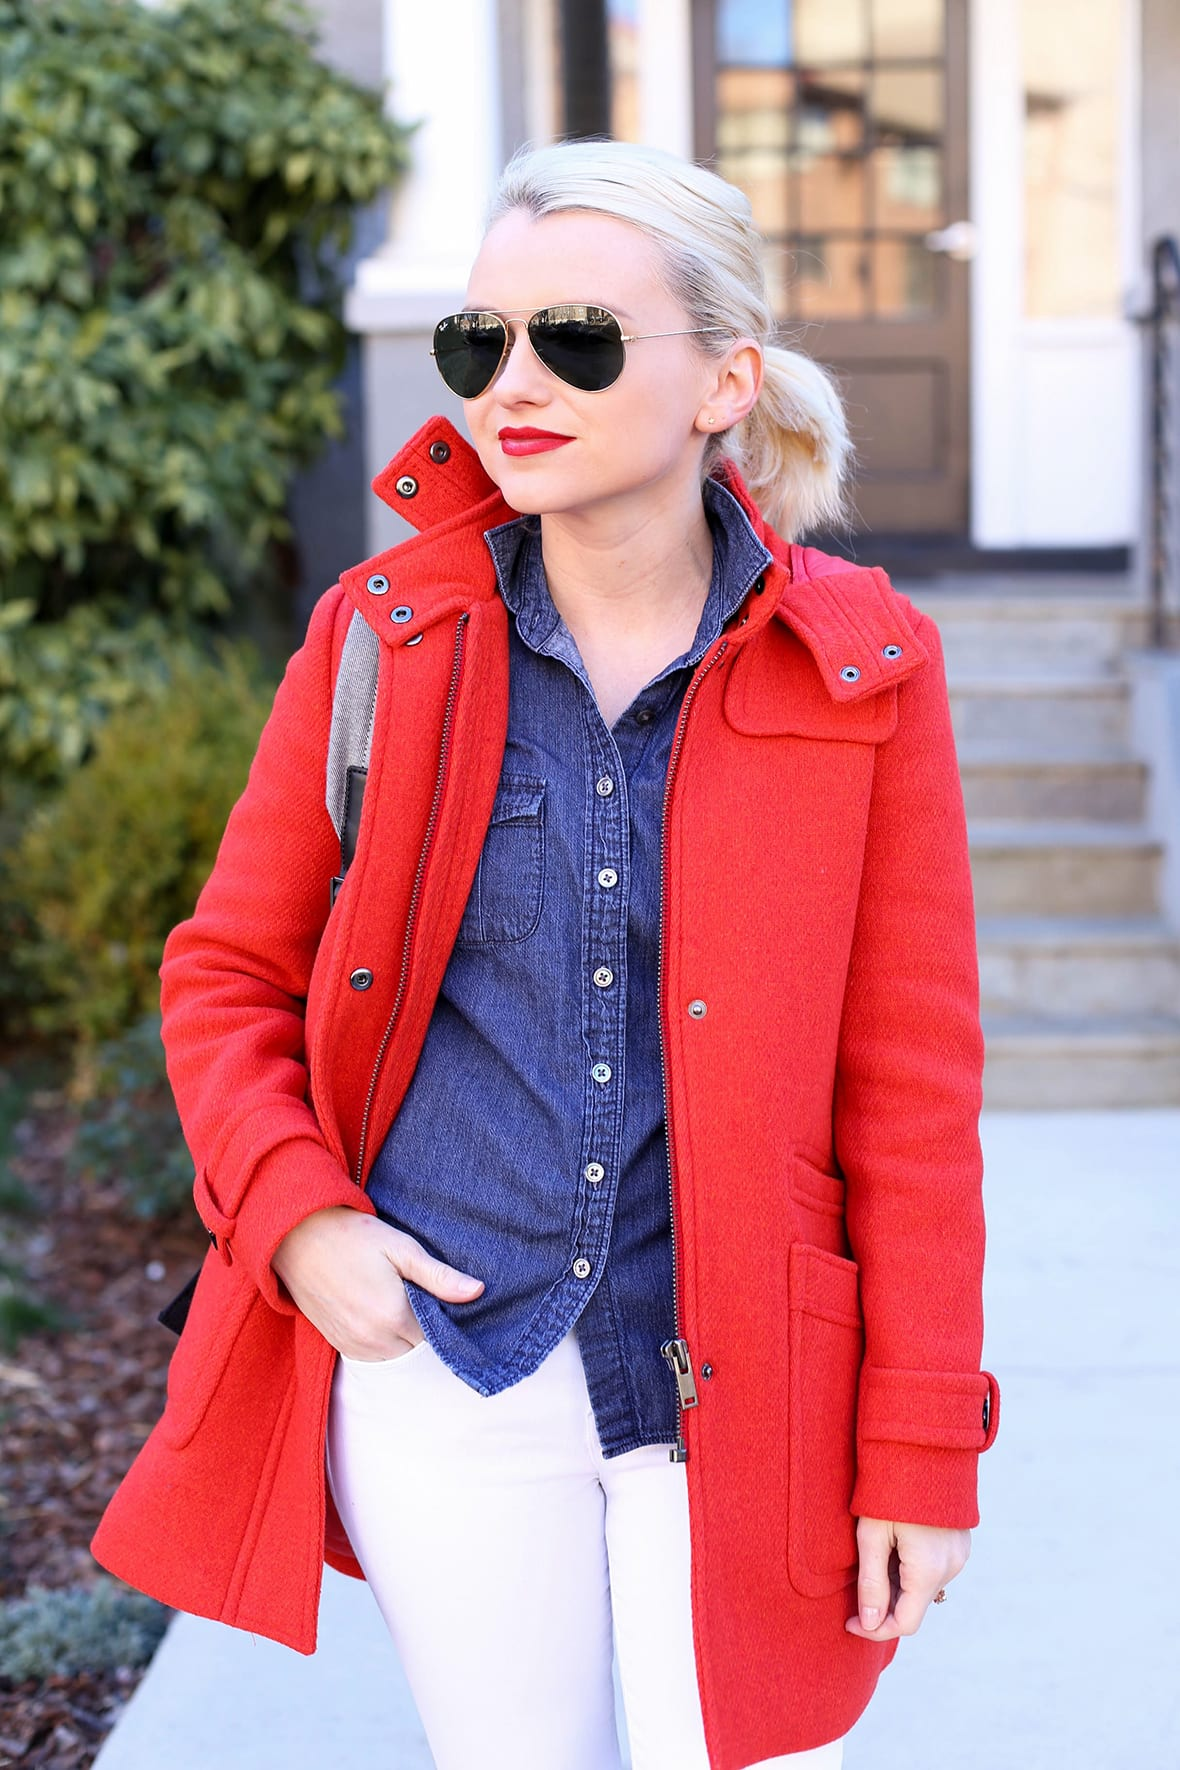 6a0d31d3f7e6 The Best Coats For Winter - How To Style A Red Coat - Poor Little It ...